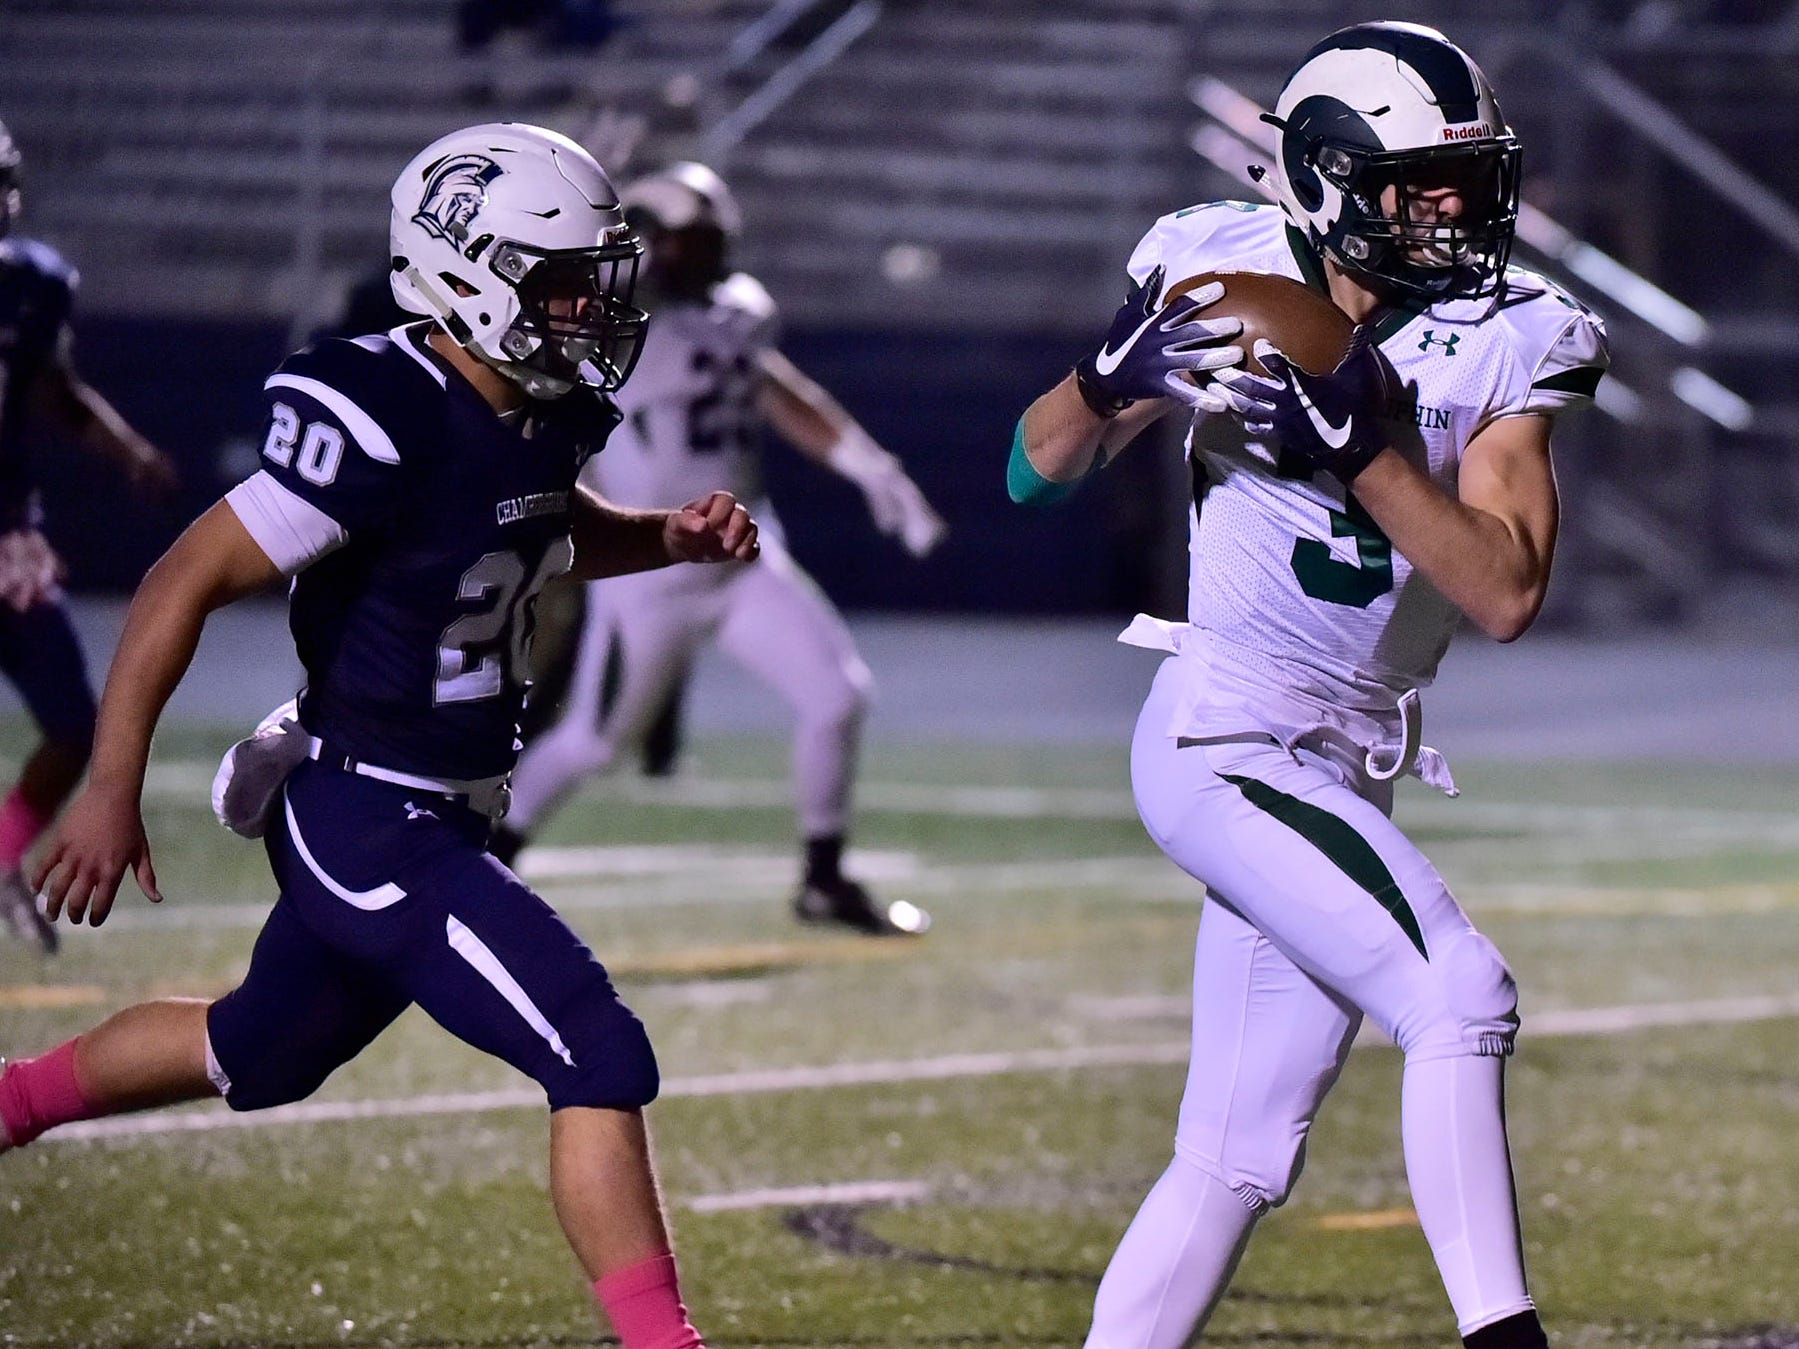 Central Dauphin's Nick Chimienti (3) catches a touchdown pass as Chambersburg's Kyere Morton (20) moves in. Chambersburg lost to Central Dauphin 35-14 in PIAA football on Friday, Oct. 19, 2018.